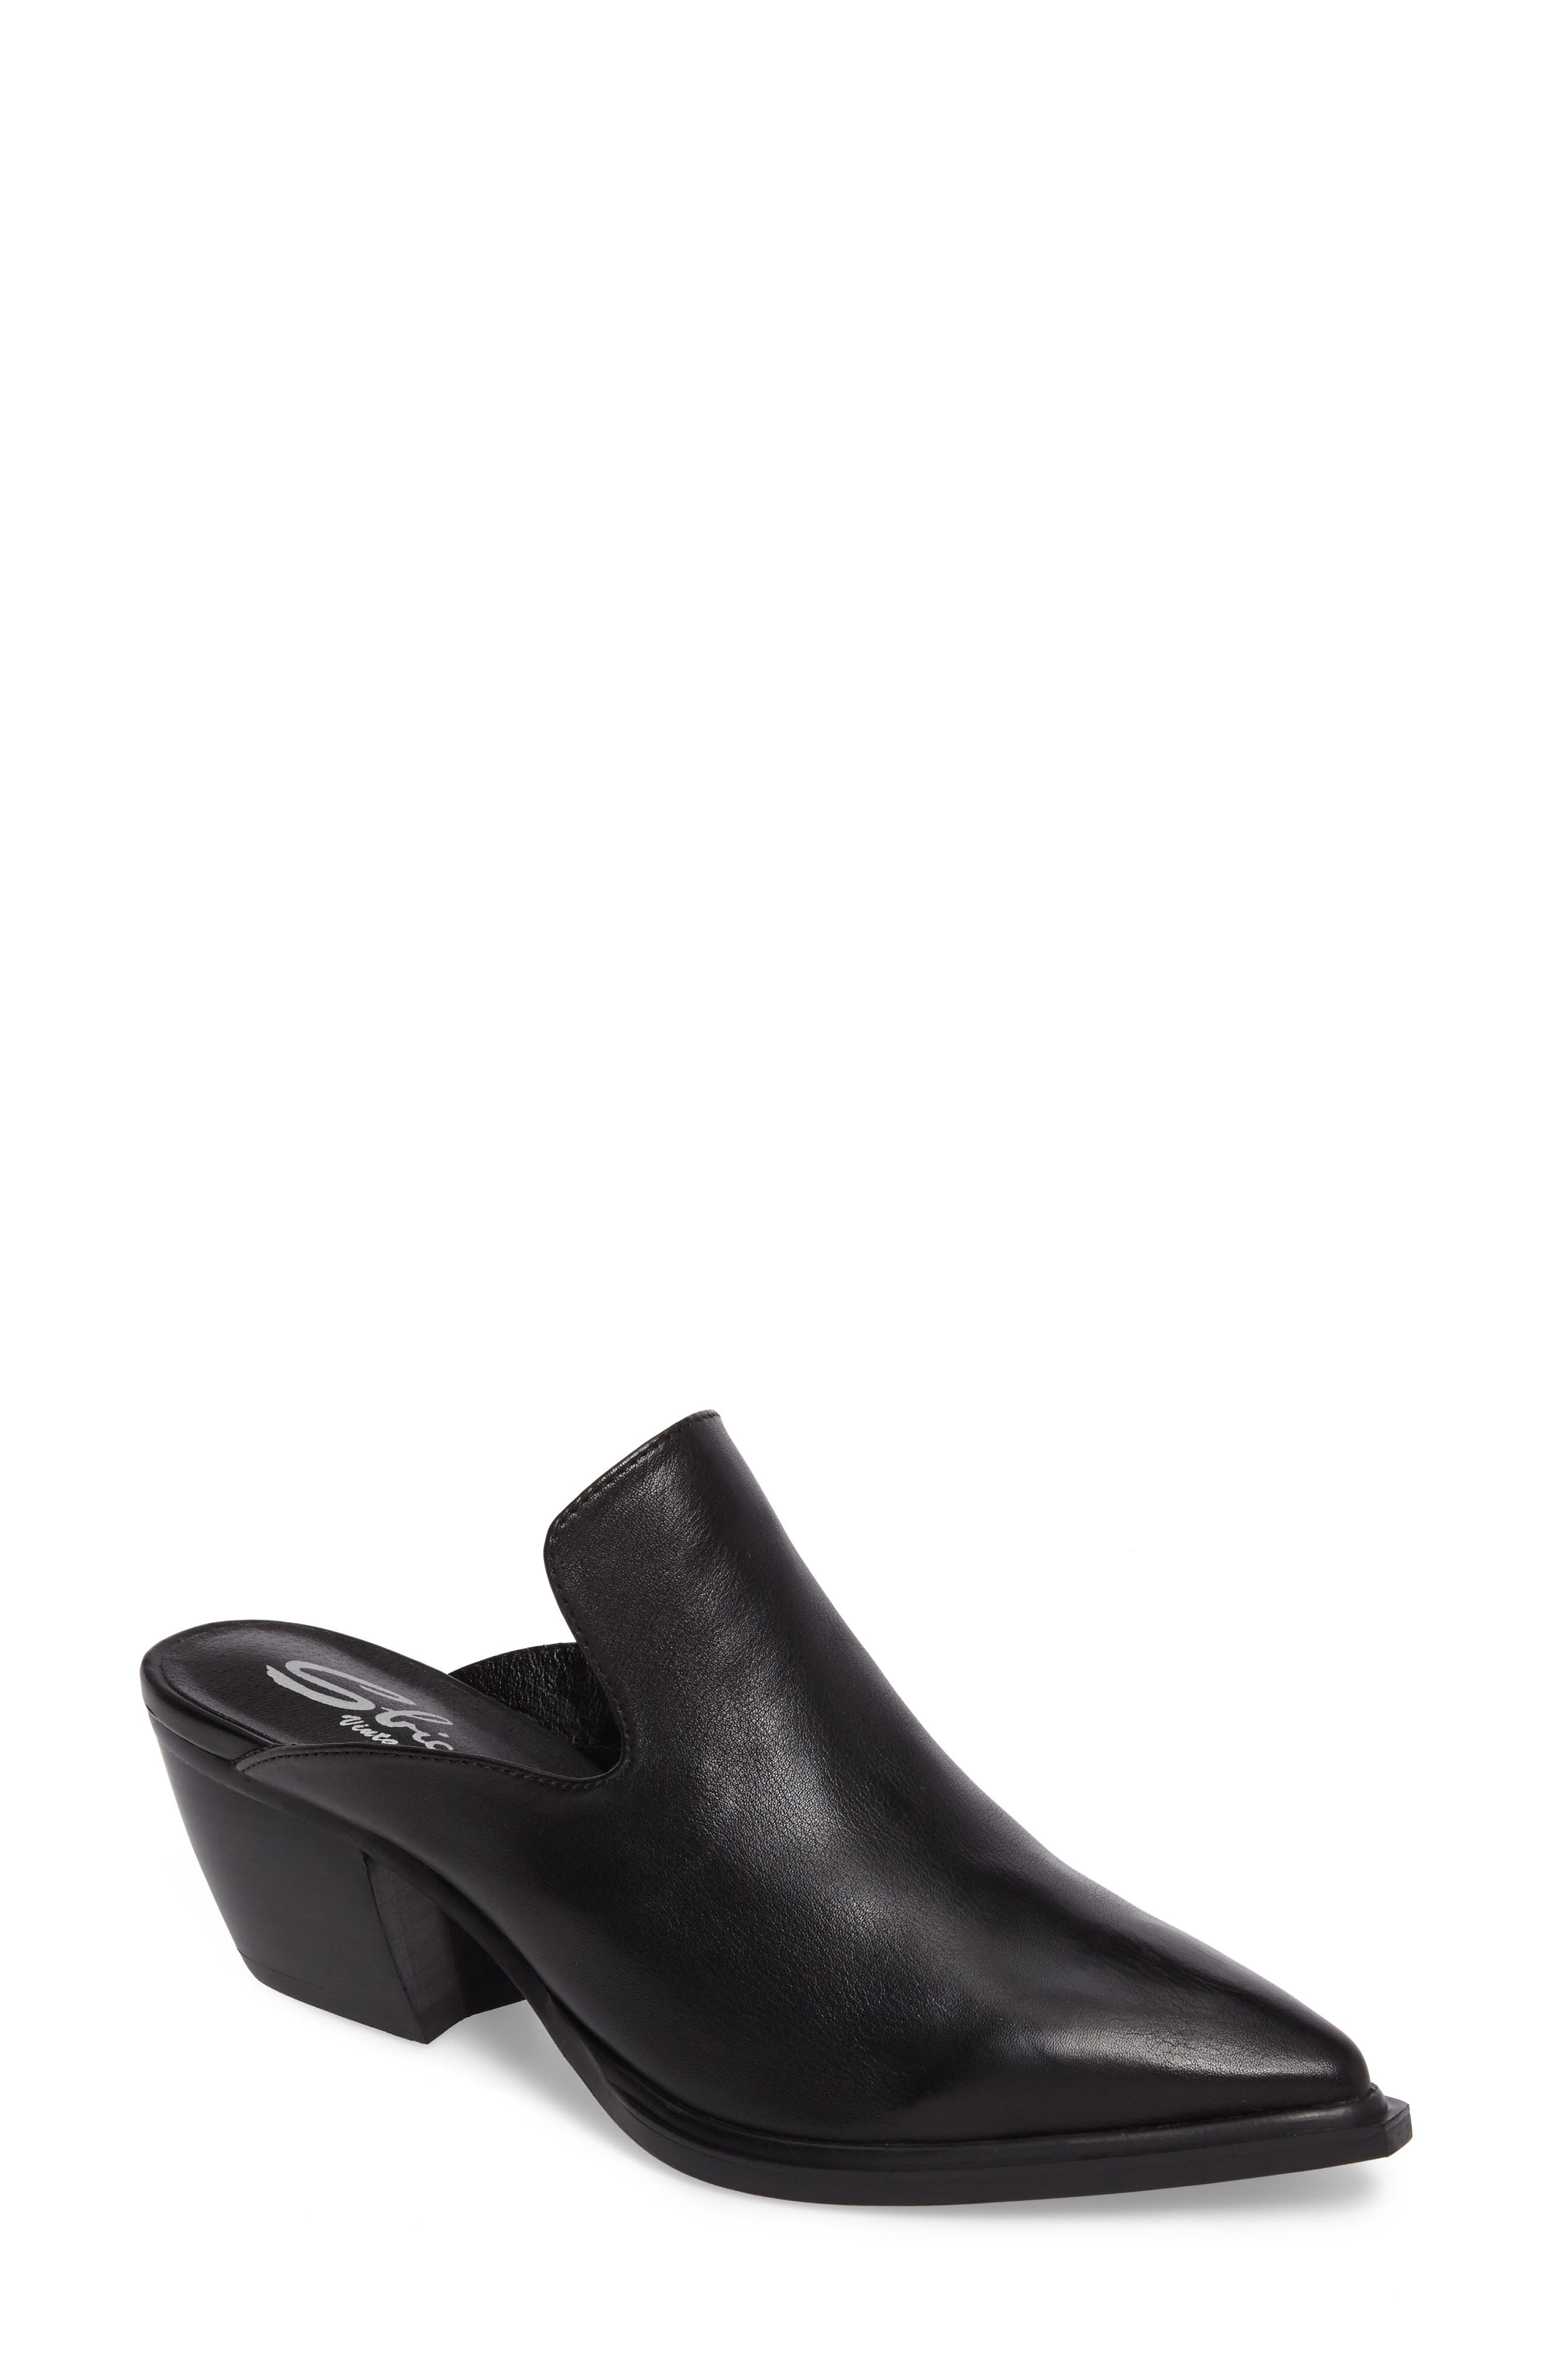 Mulah Pointy Toe Mule,                             Main thumbnail 1, color,                             Black Leather